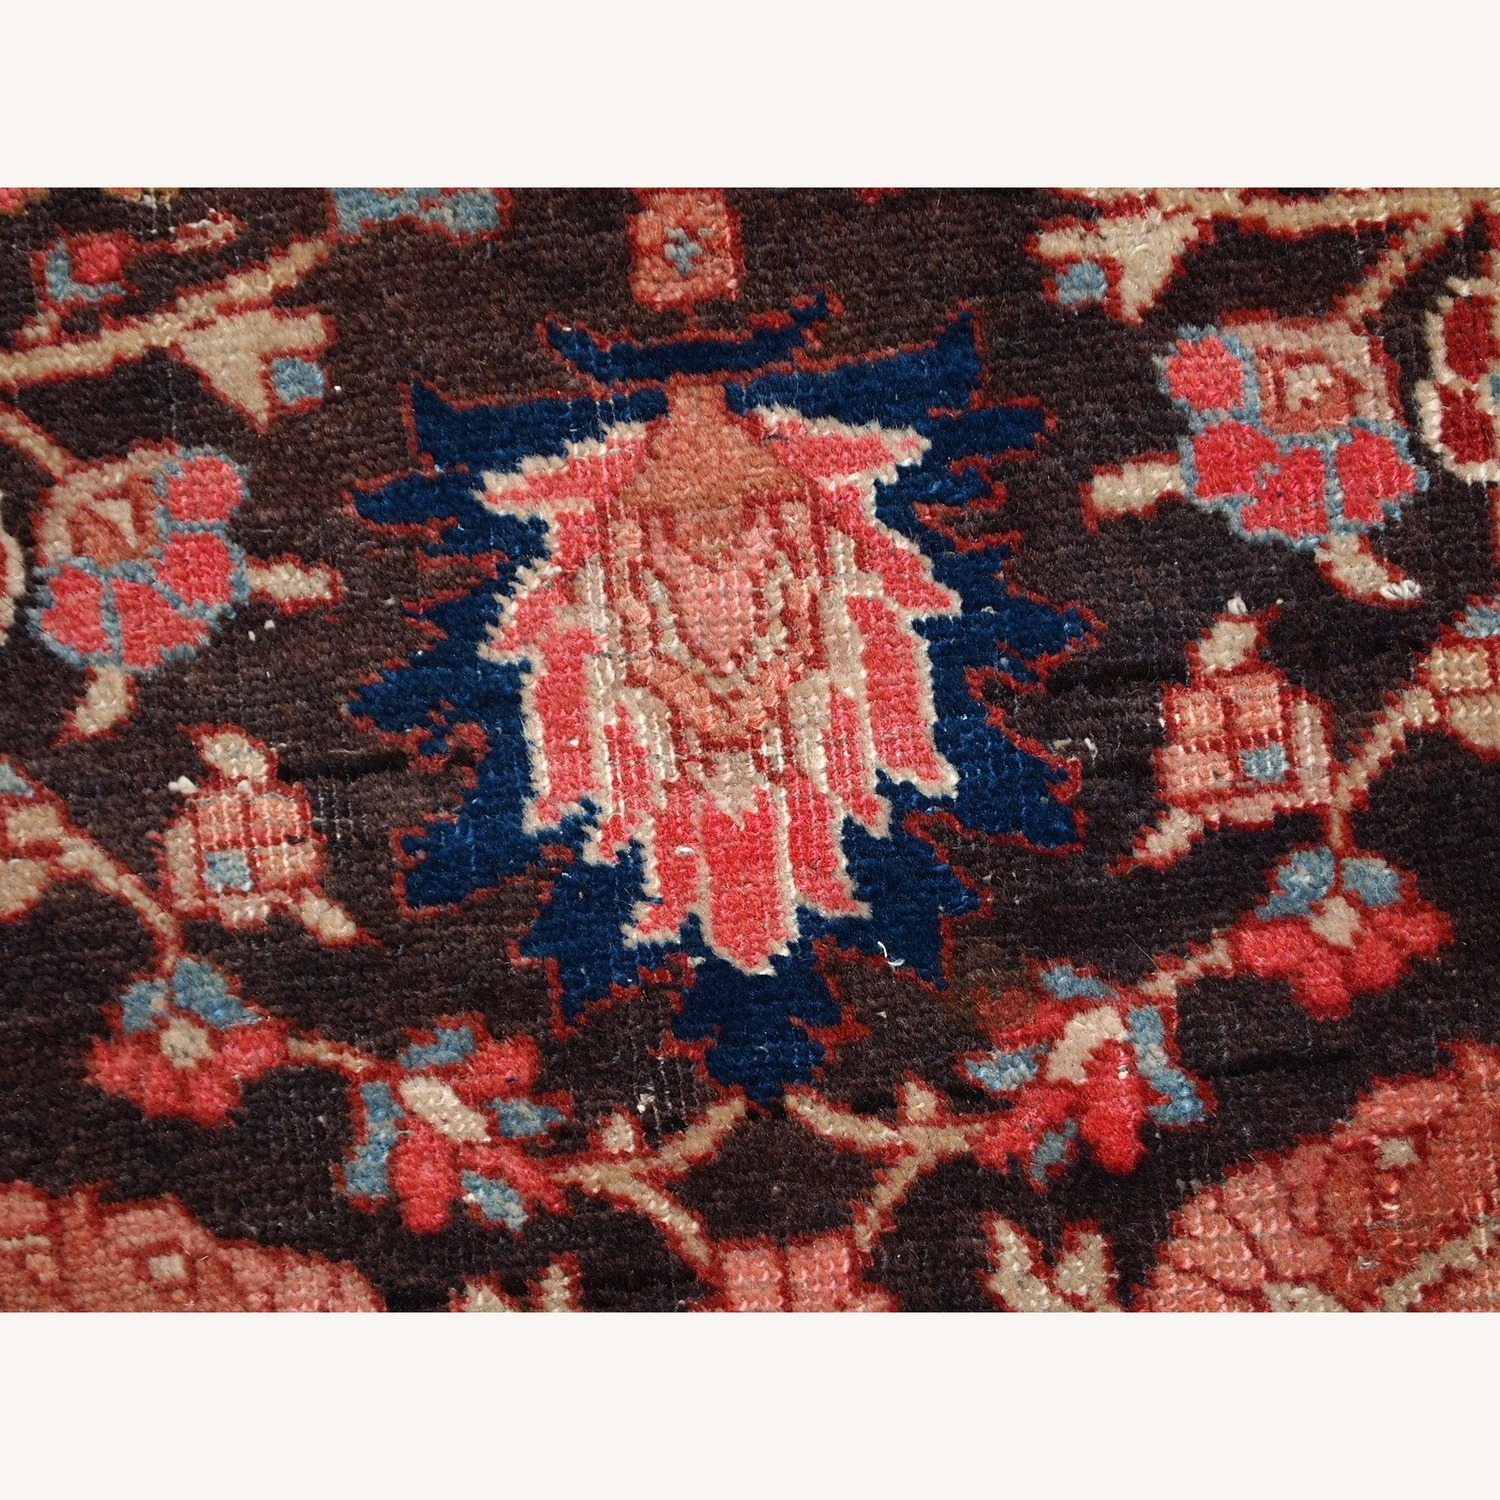 Handmade Antique Persian Bidjar Rug - image-4